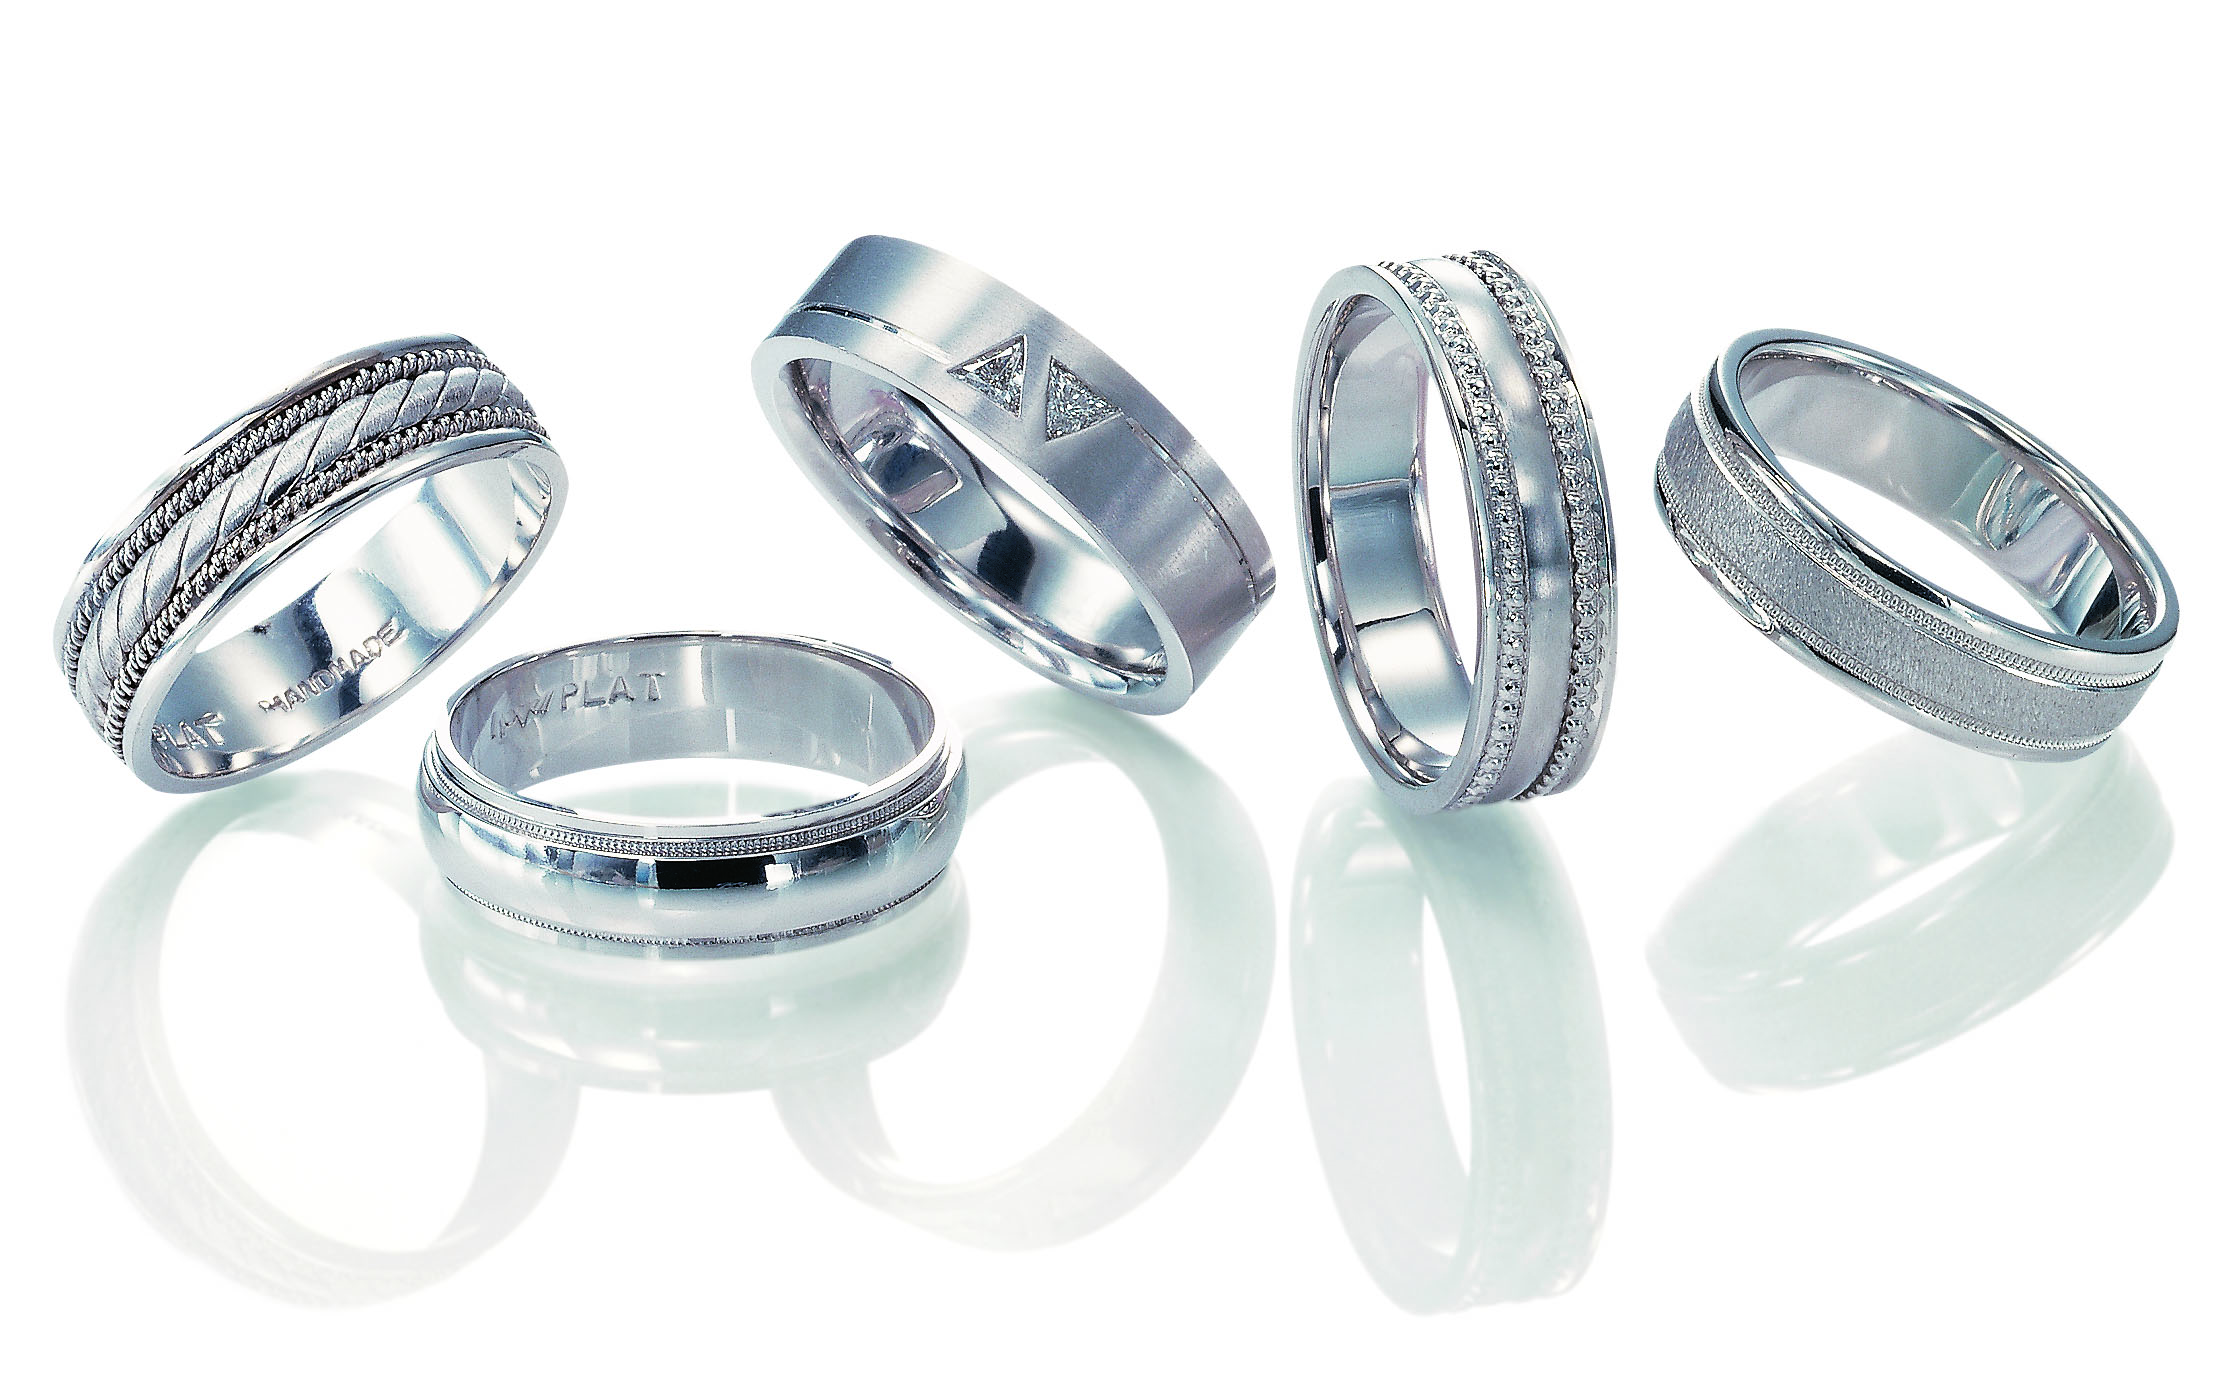 Magnificent Platinum Men Wedding Rings 2214 x 1392 · 432 kB · jpeg